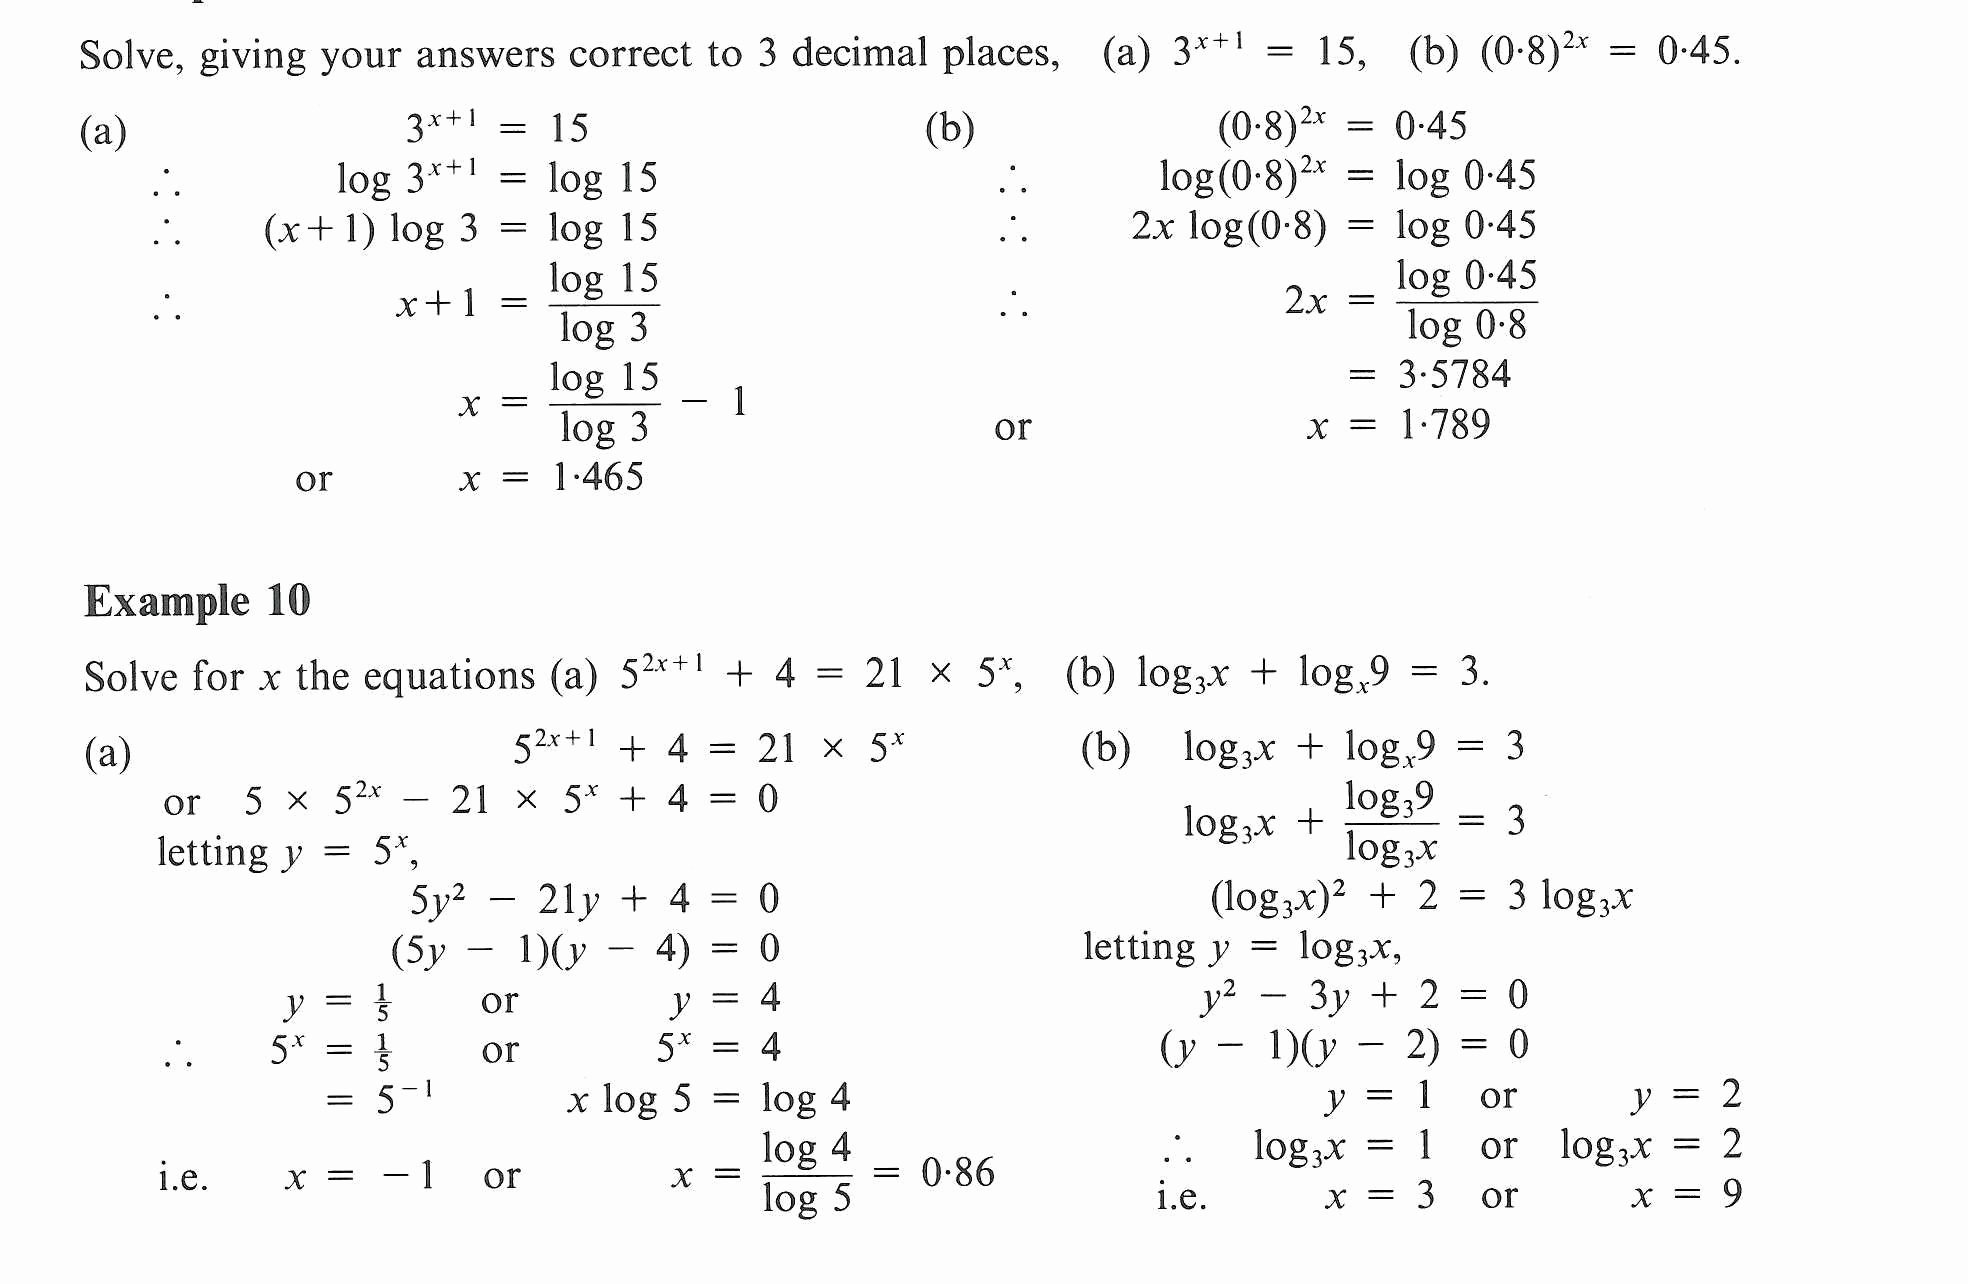 Geometric Sequence Worksheet Answers Best Of Geometric Sequences and Series Worksheet Answers